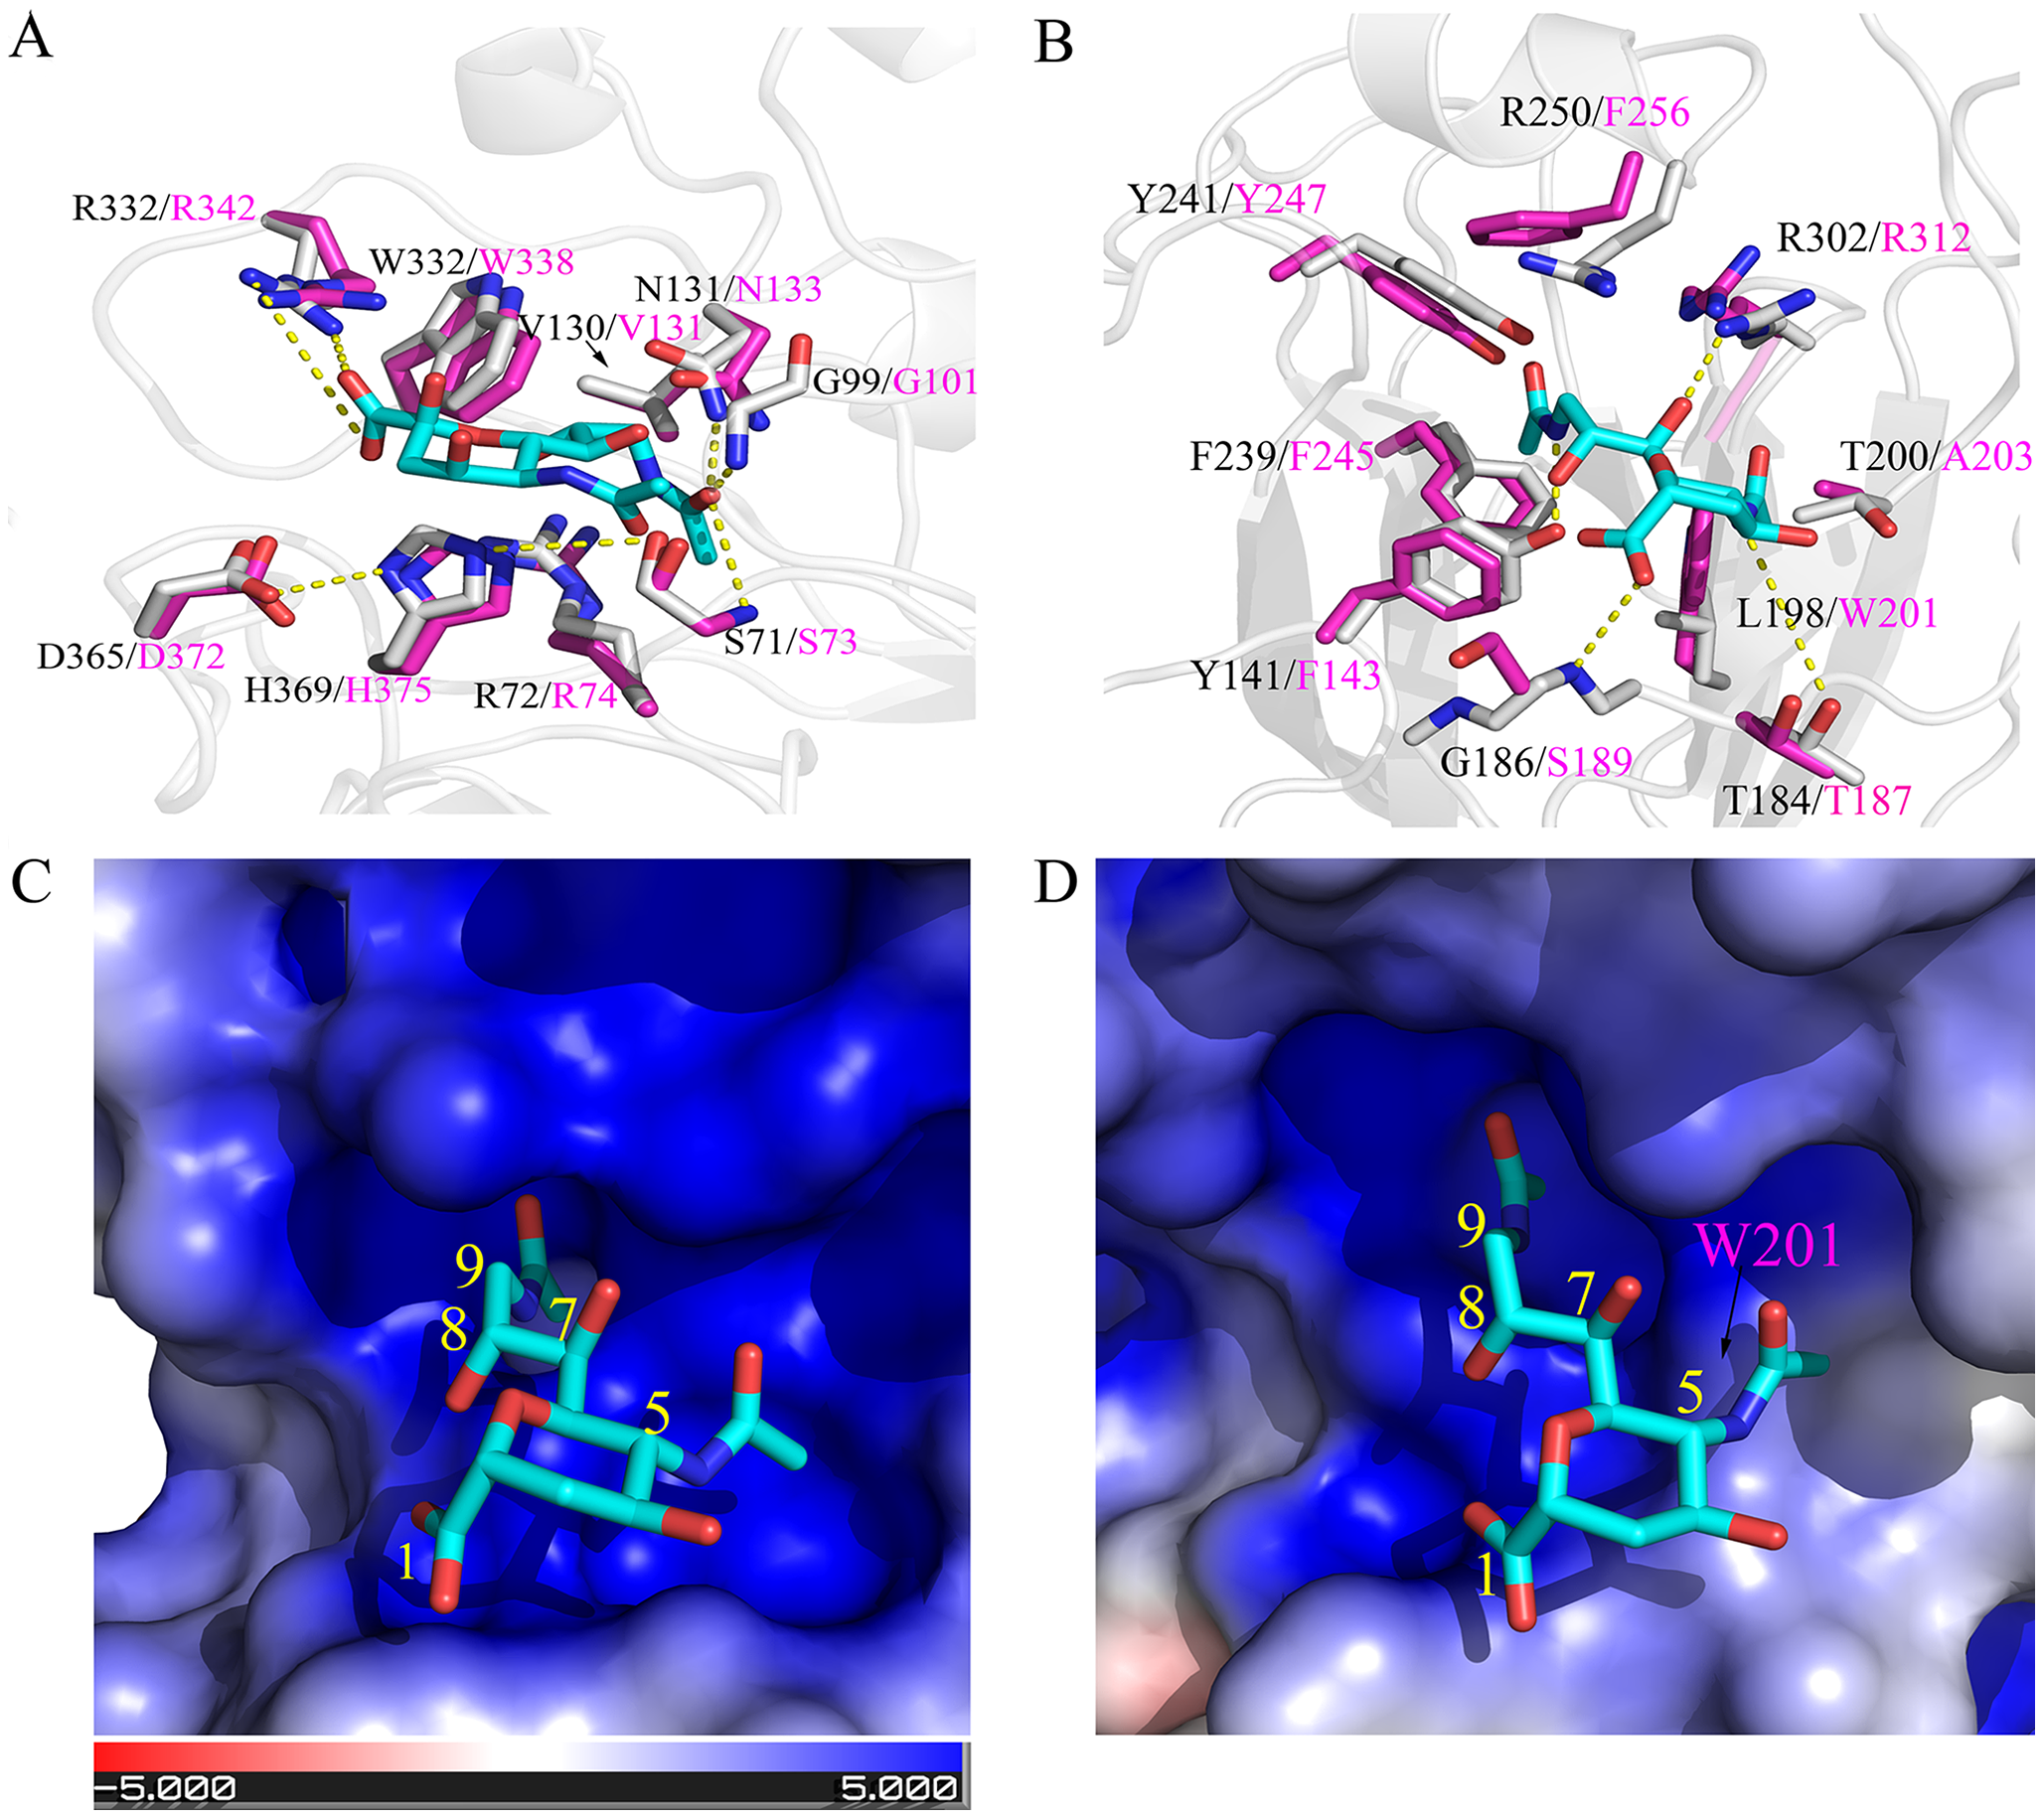 Structural comparisons of C/OK and human C HE receptor-binding pocket and substrate-binding site.